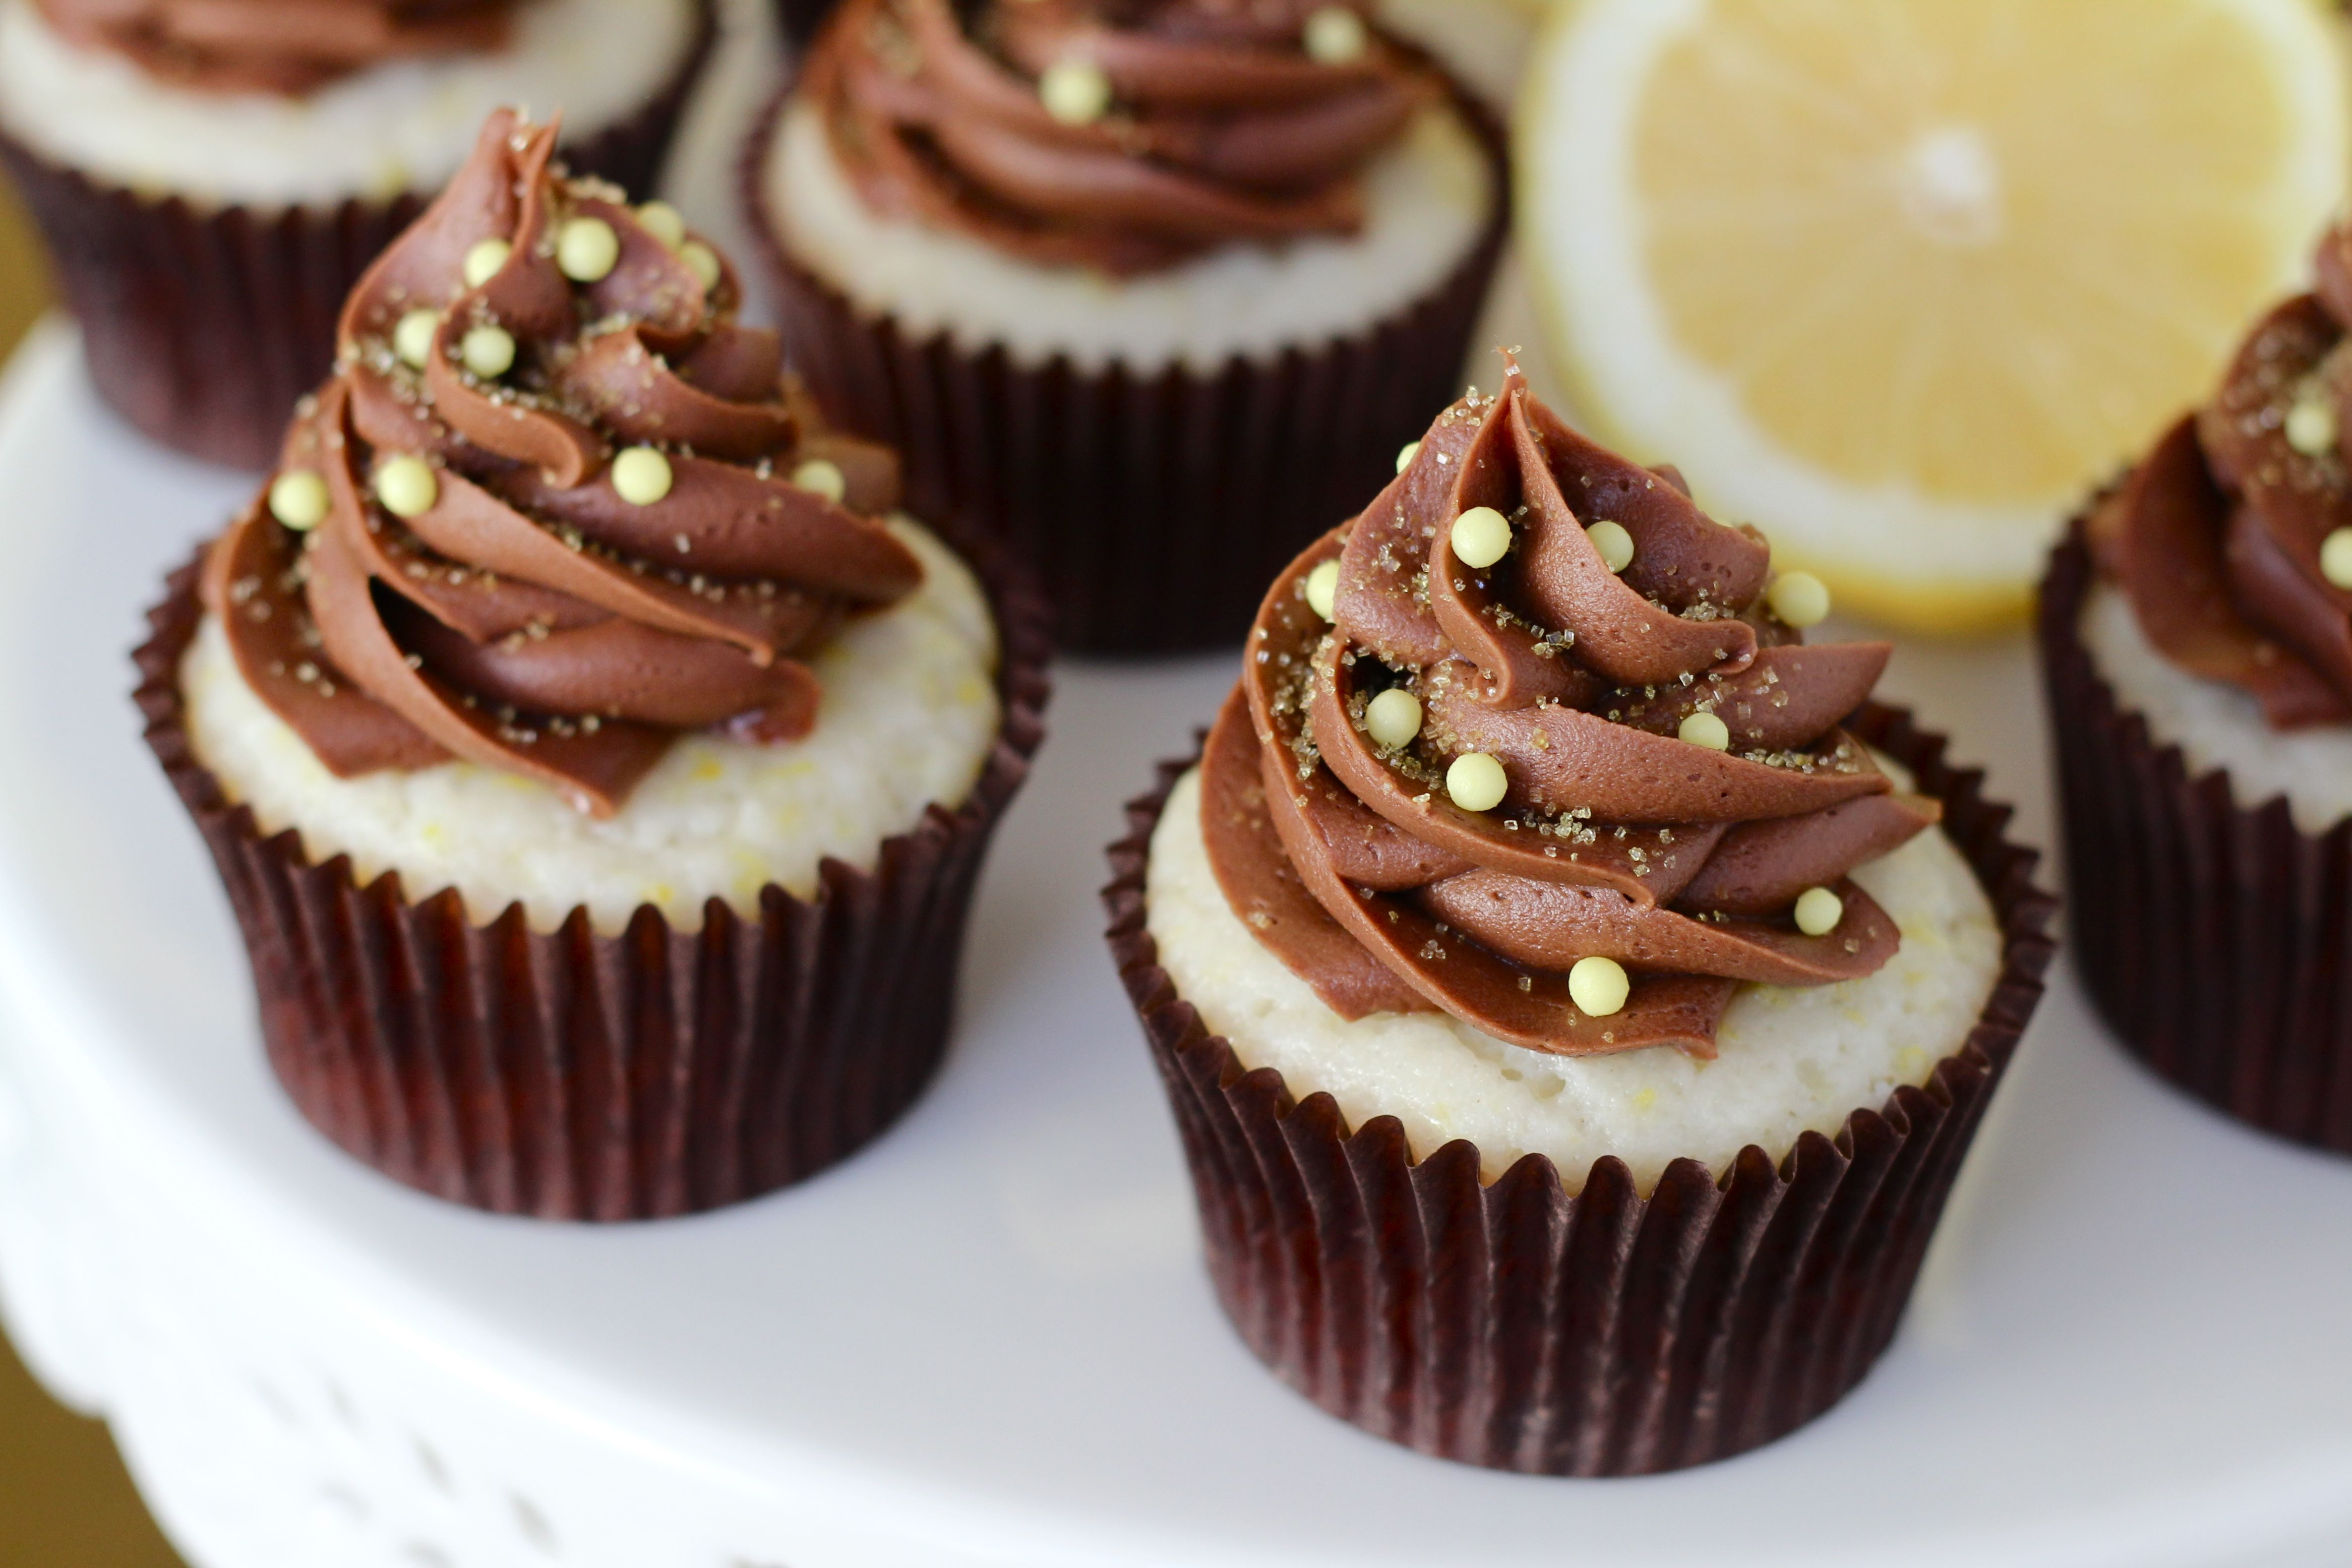 Chocolate Lemon Cupcakes - Your Cup of Cake